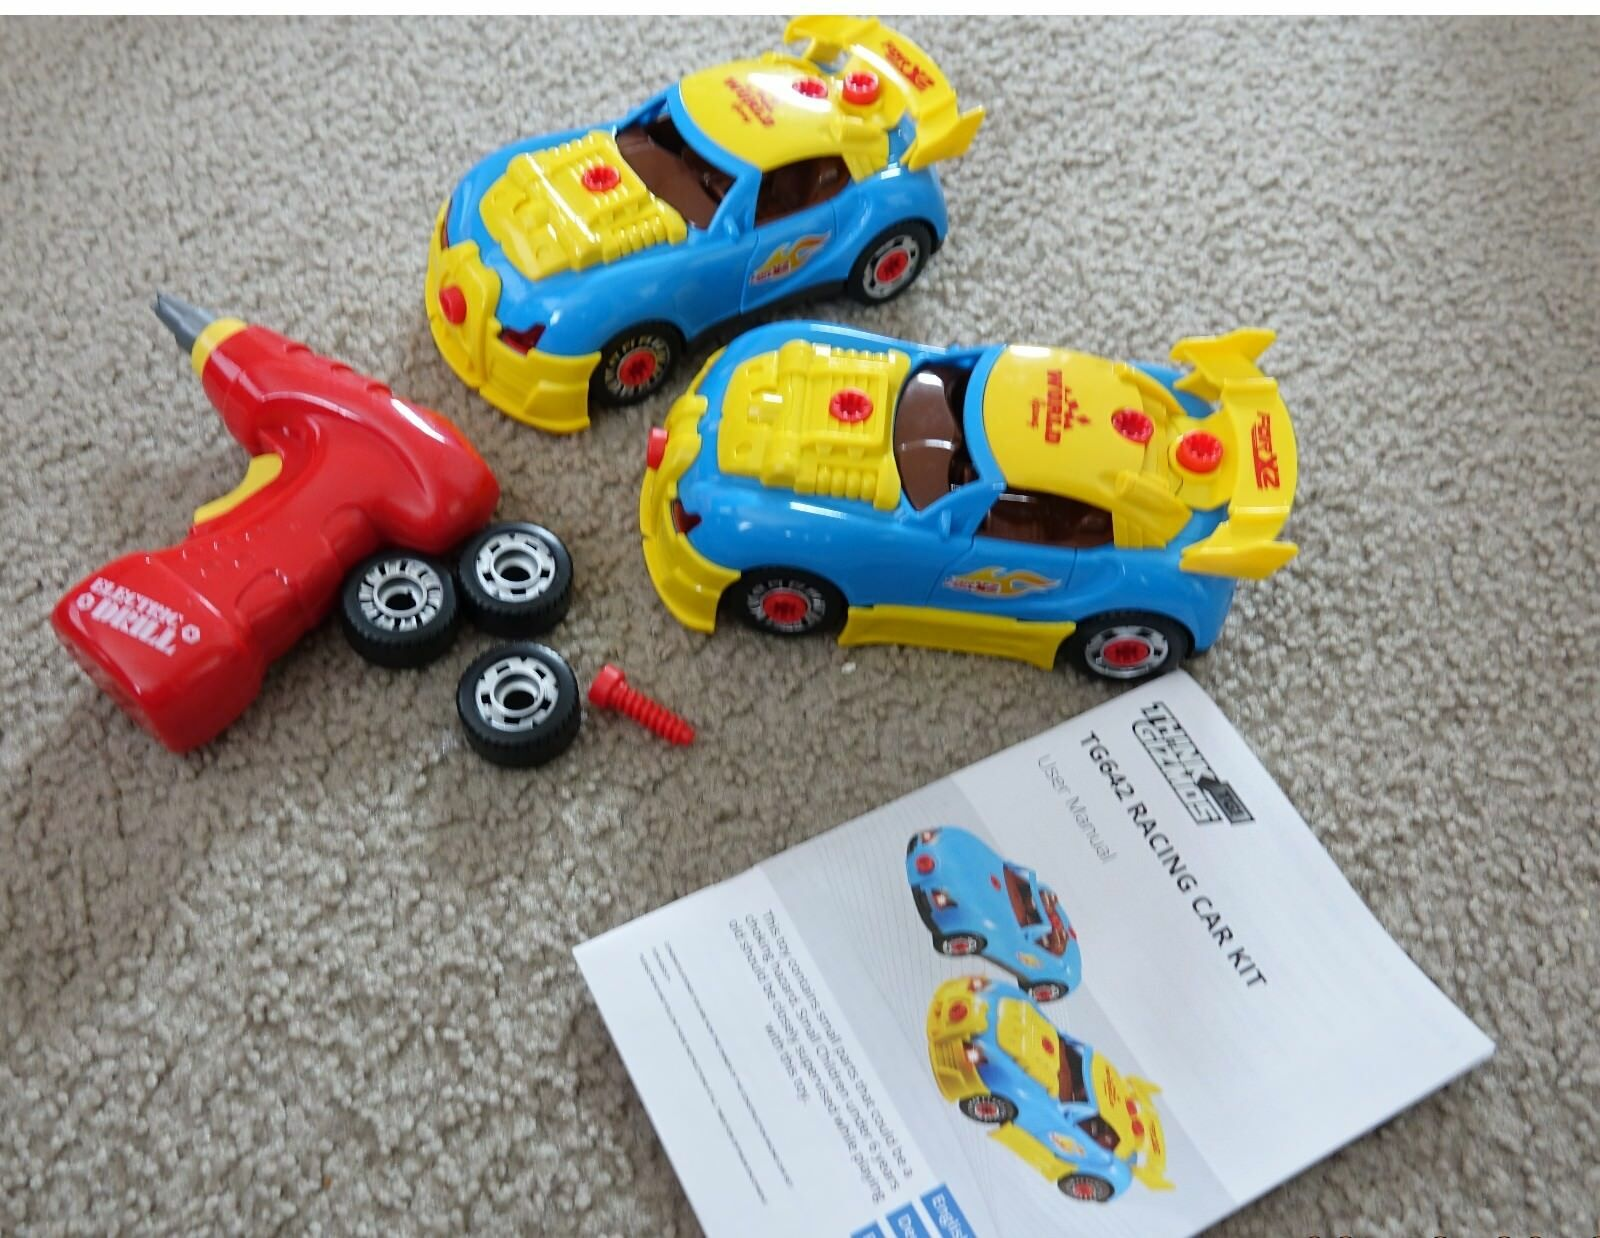 Think Gizmos Take Apart TWO Toy Racing Cars Kit Kit Kit with working toy drill For Kids 6c0953